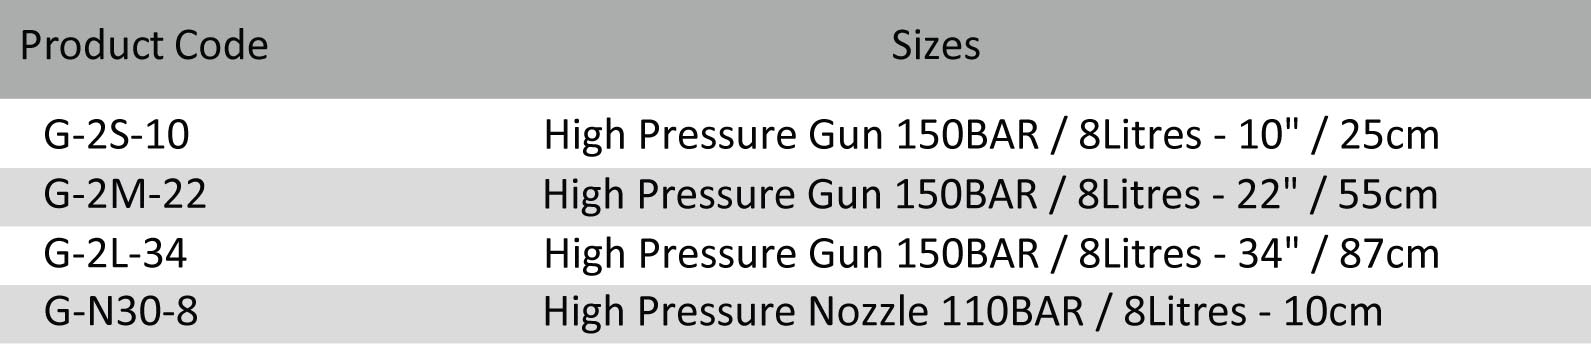 High Pressure Gun - 150 Bar